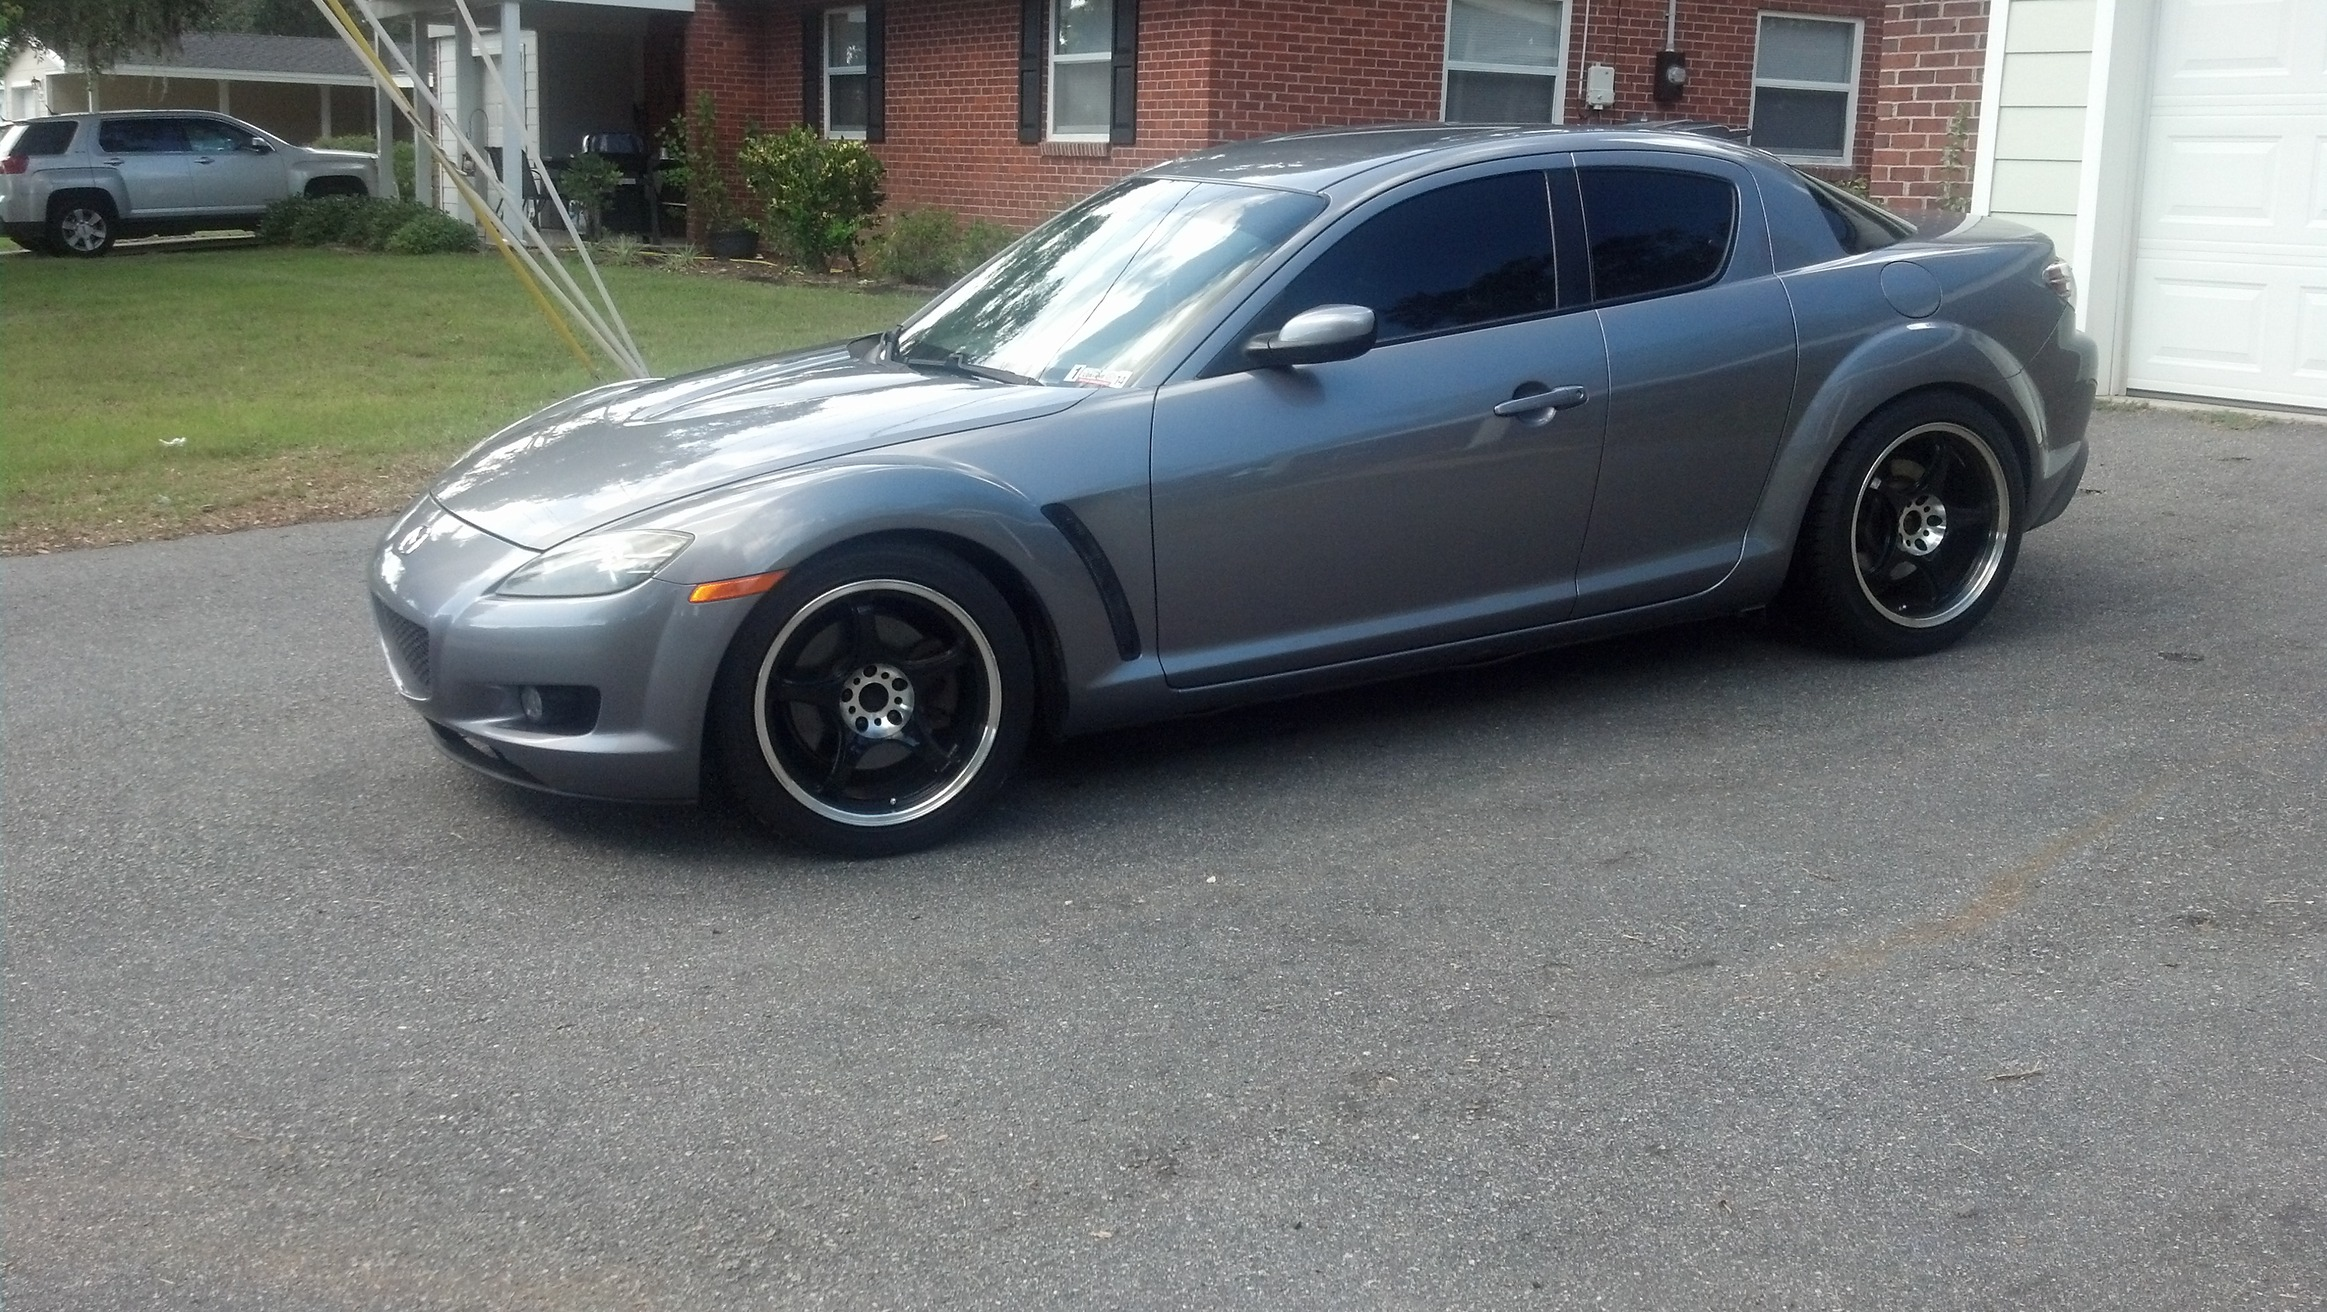 27 Responses To Rewiring The Rx8 Fog Lights